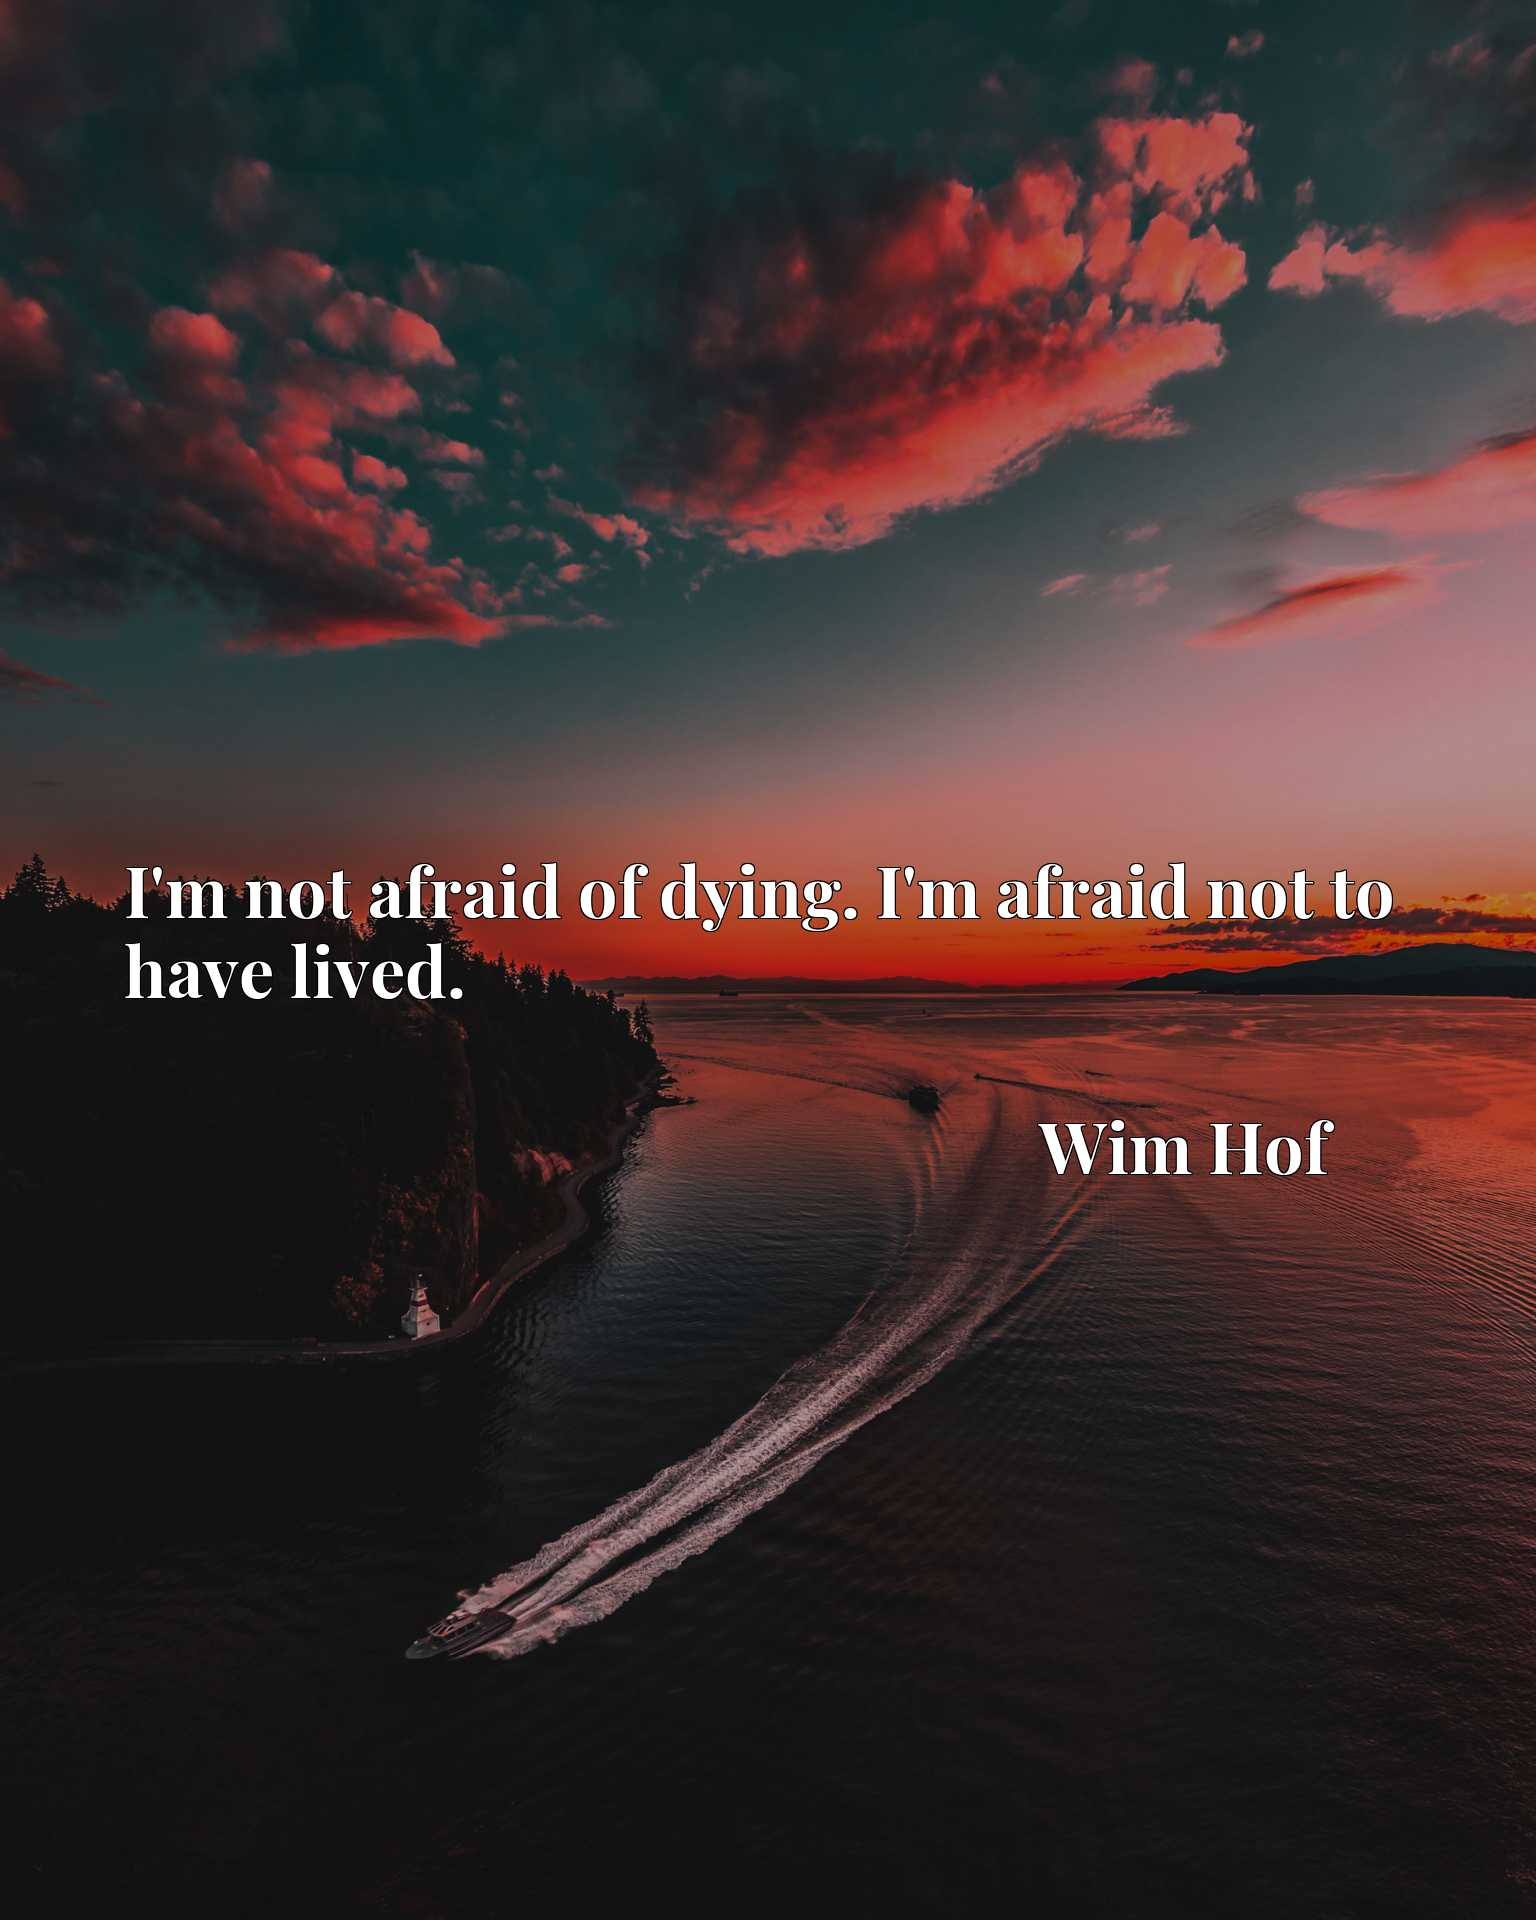 I'm not afraid of dying. I'm afraid not to have lived.